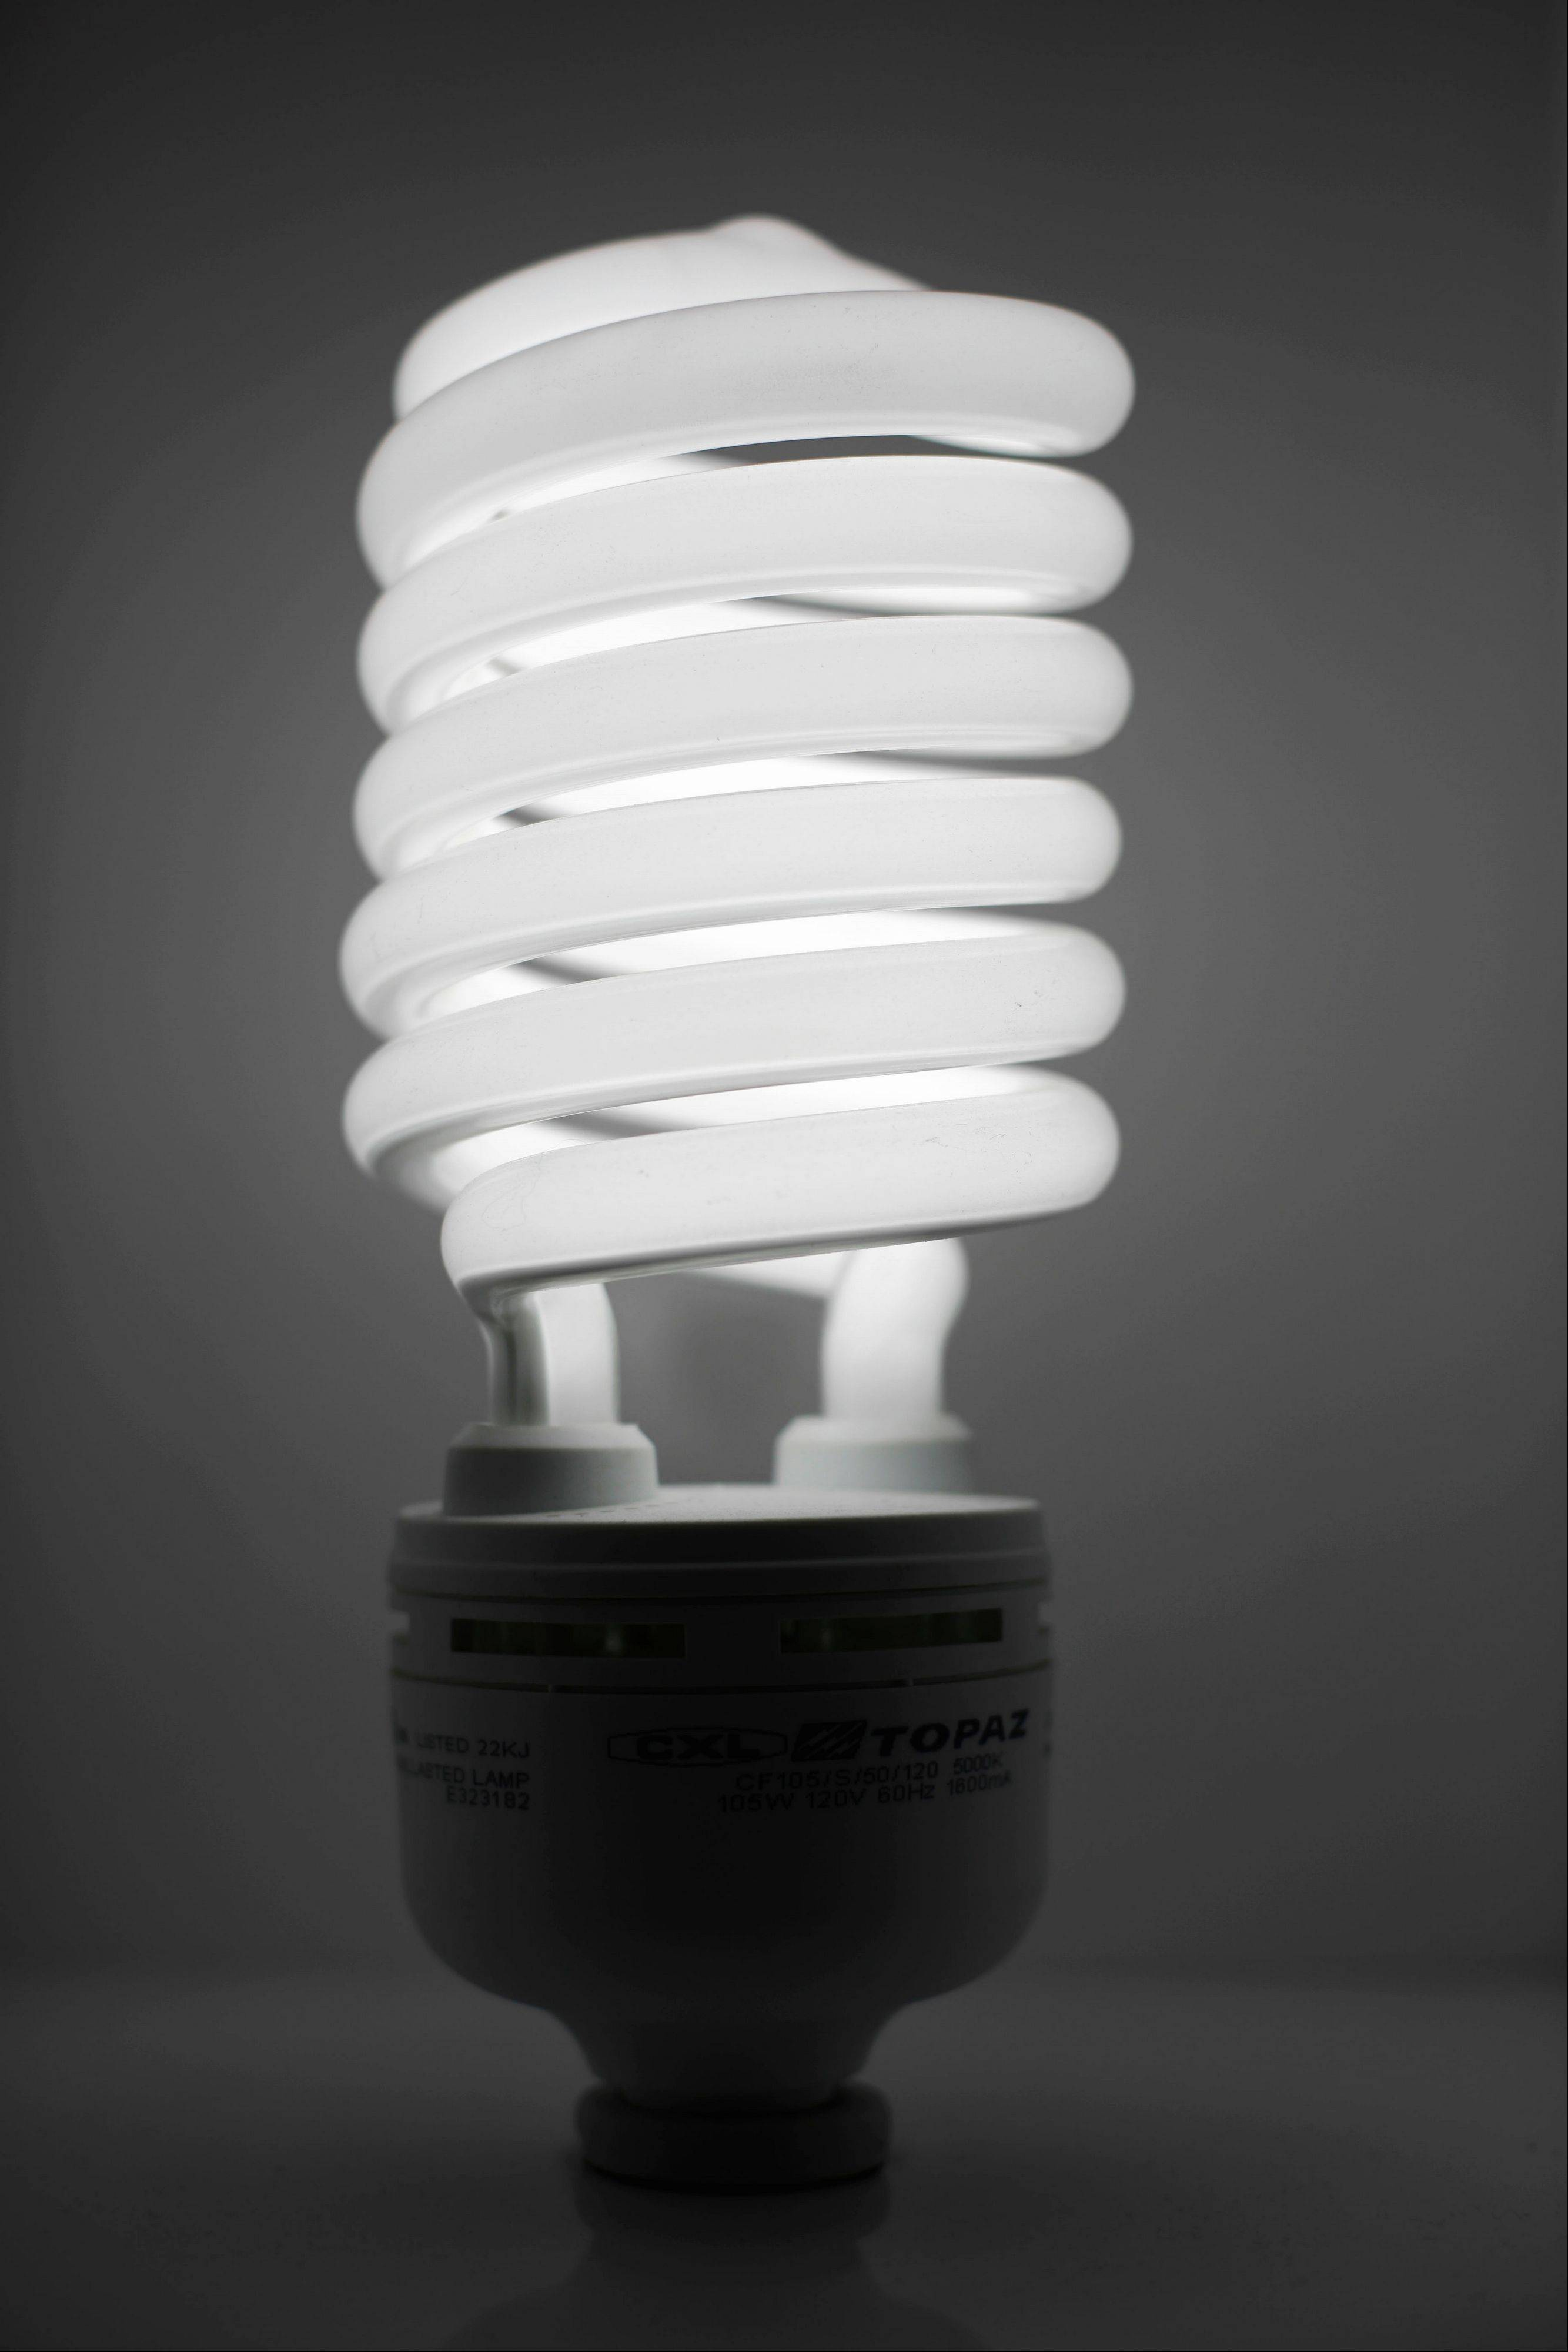 Having to buy a squiggly fluorescent light bulb is an affront to personal freedom, some lawmakers are saying. But not enough apparently, now that House Republicans failed to vote down a law setting new energy-efficiency standards for the bulbs.